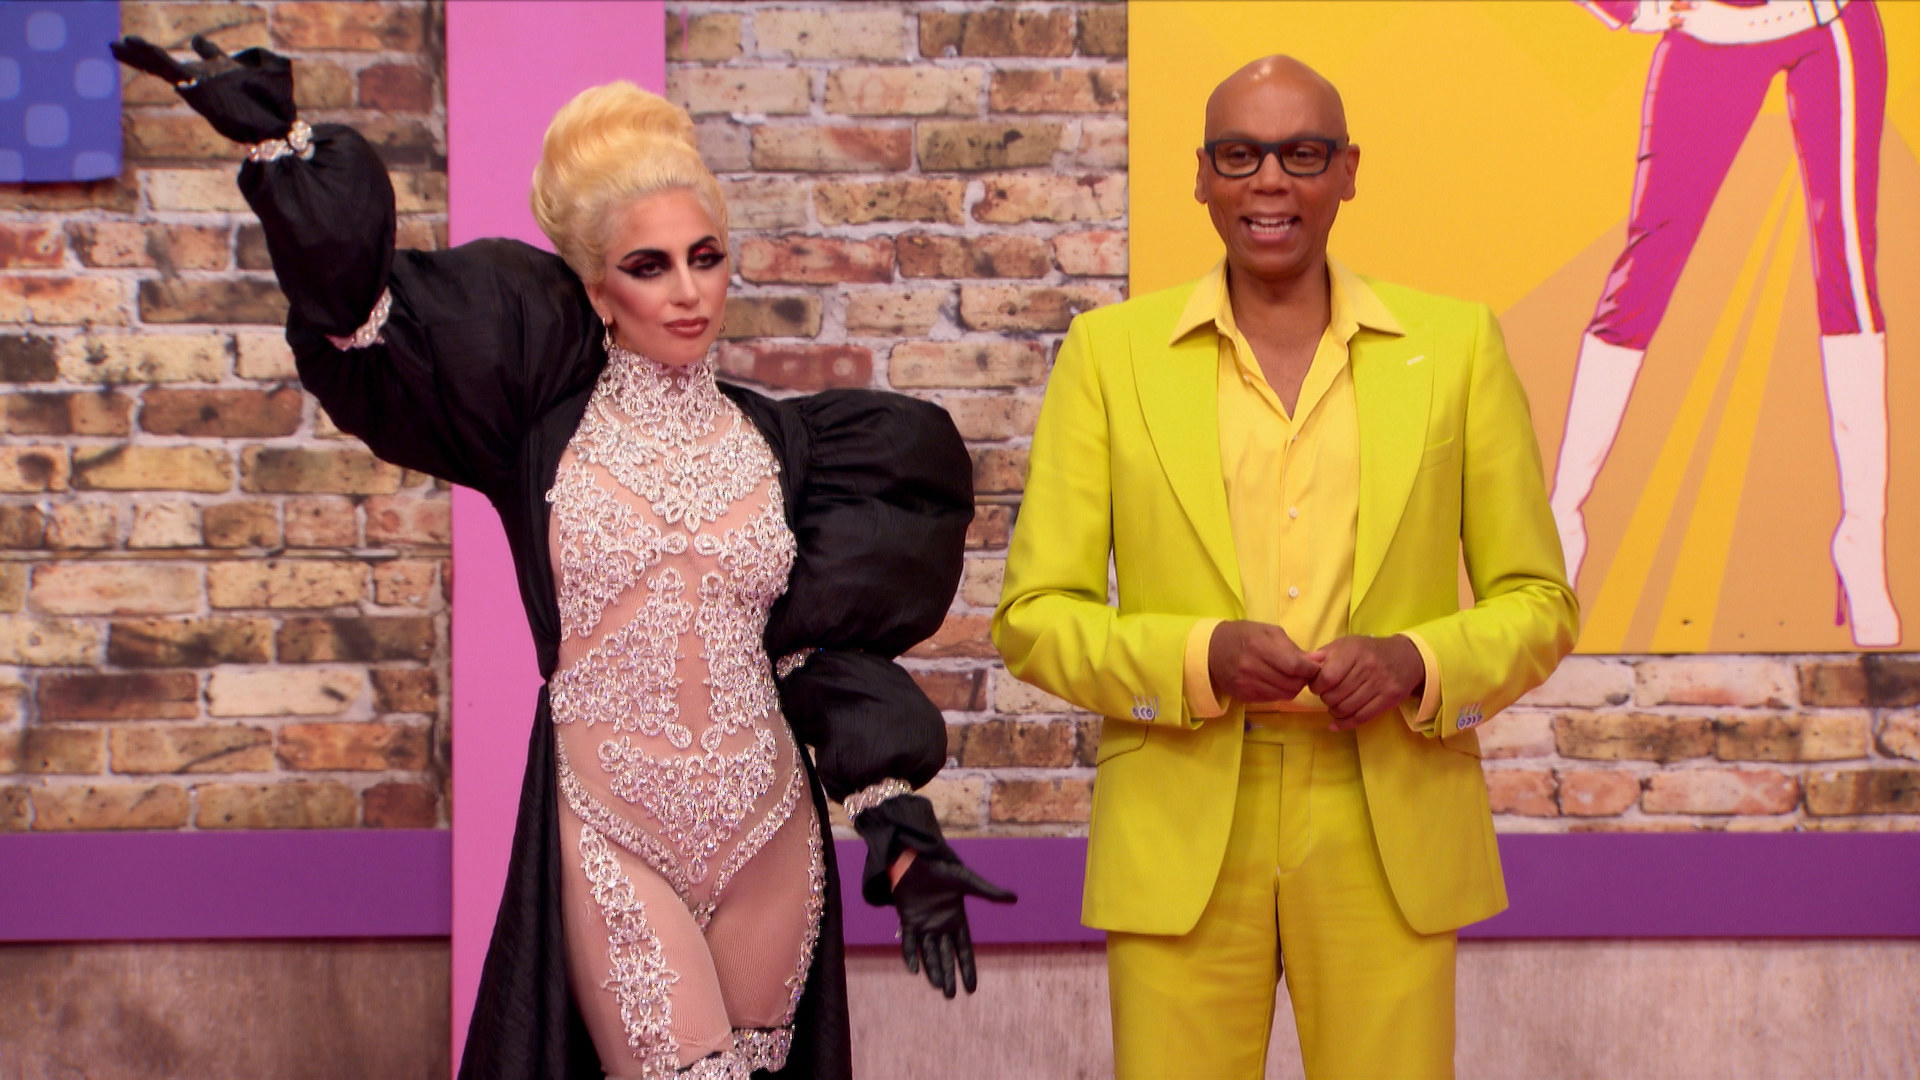 Lady Gaga and RuPaul stand in the work room